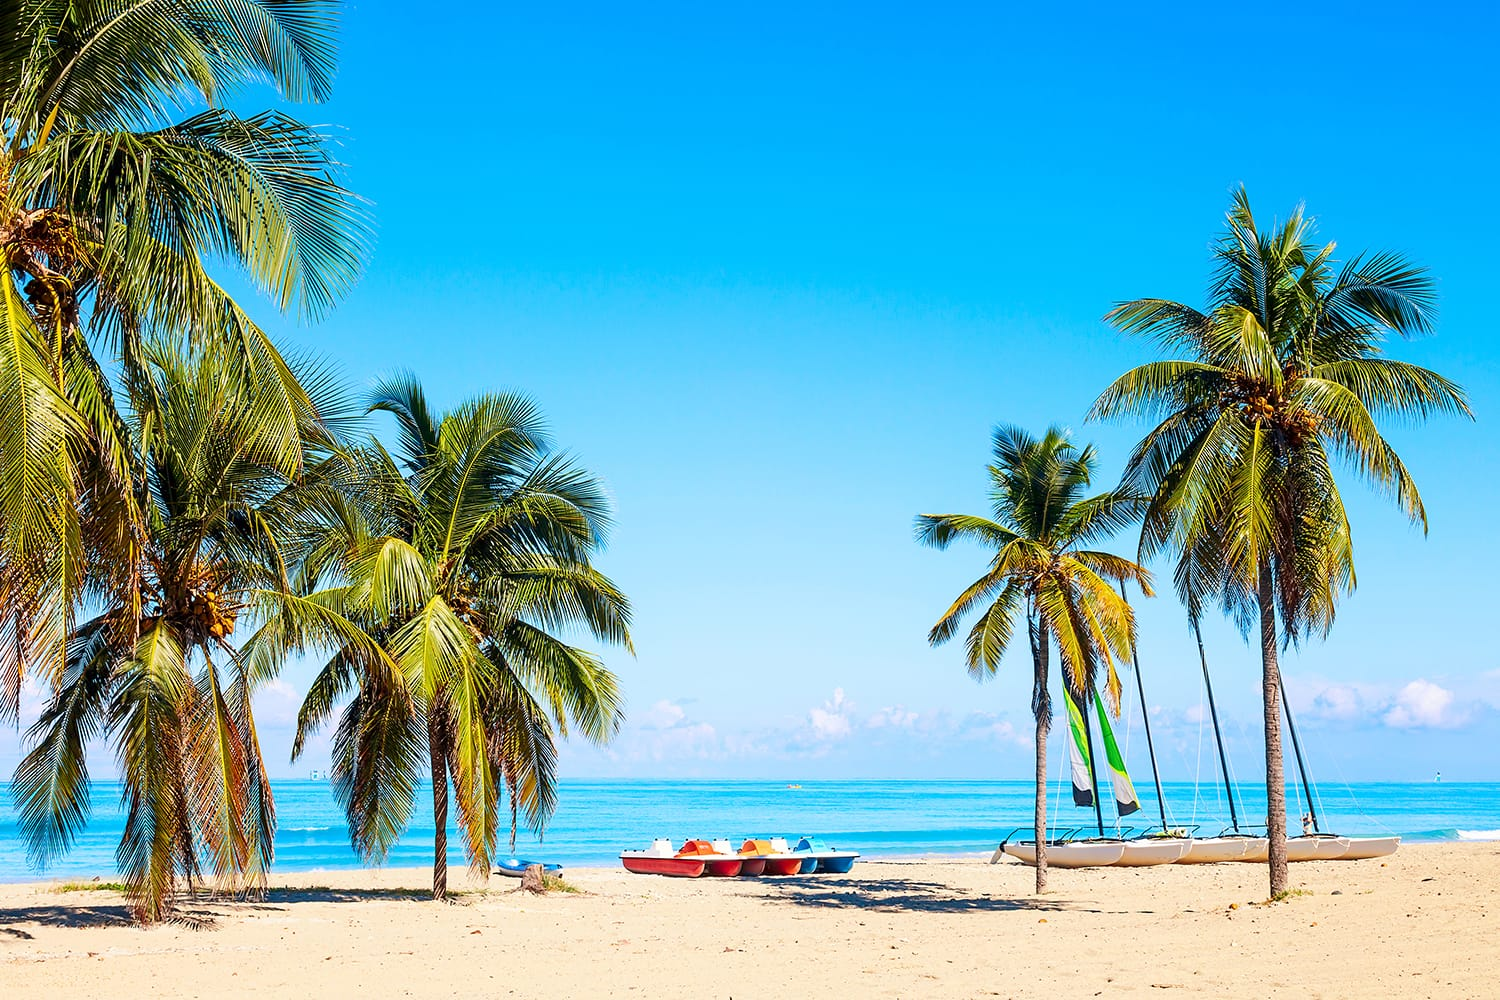 The tropical beach of Varadero in Cuba with sailboats and palm trees on a summer day with turquoise water.